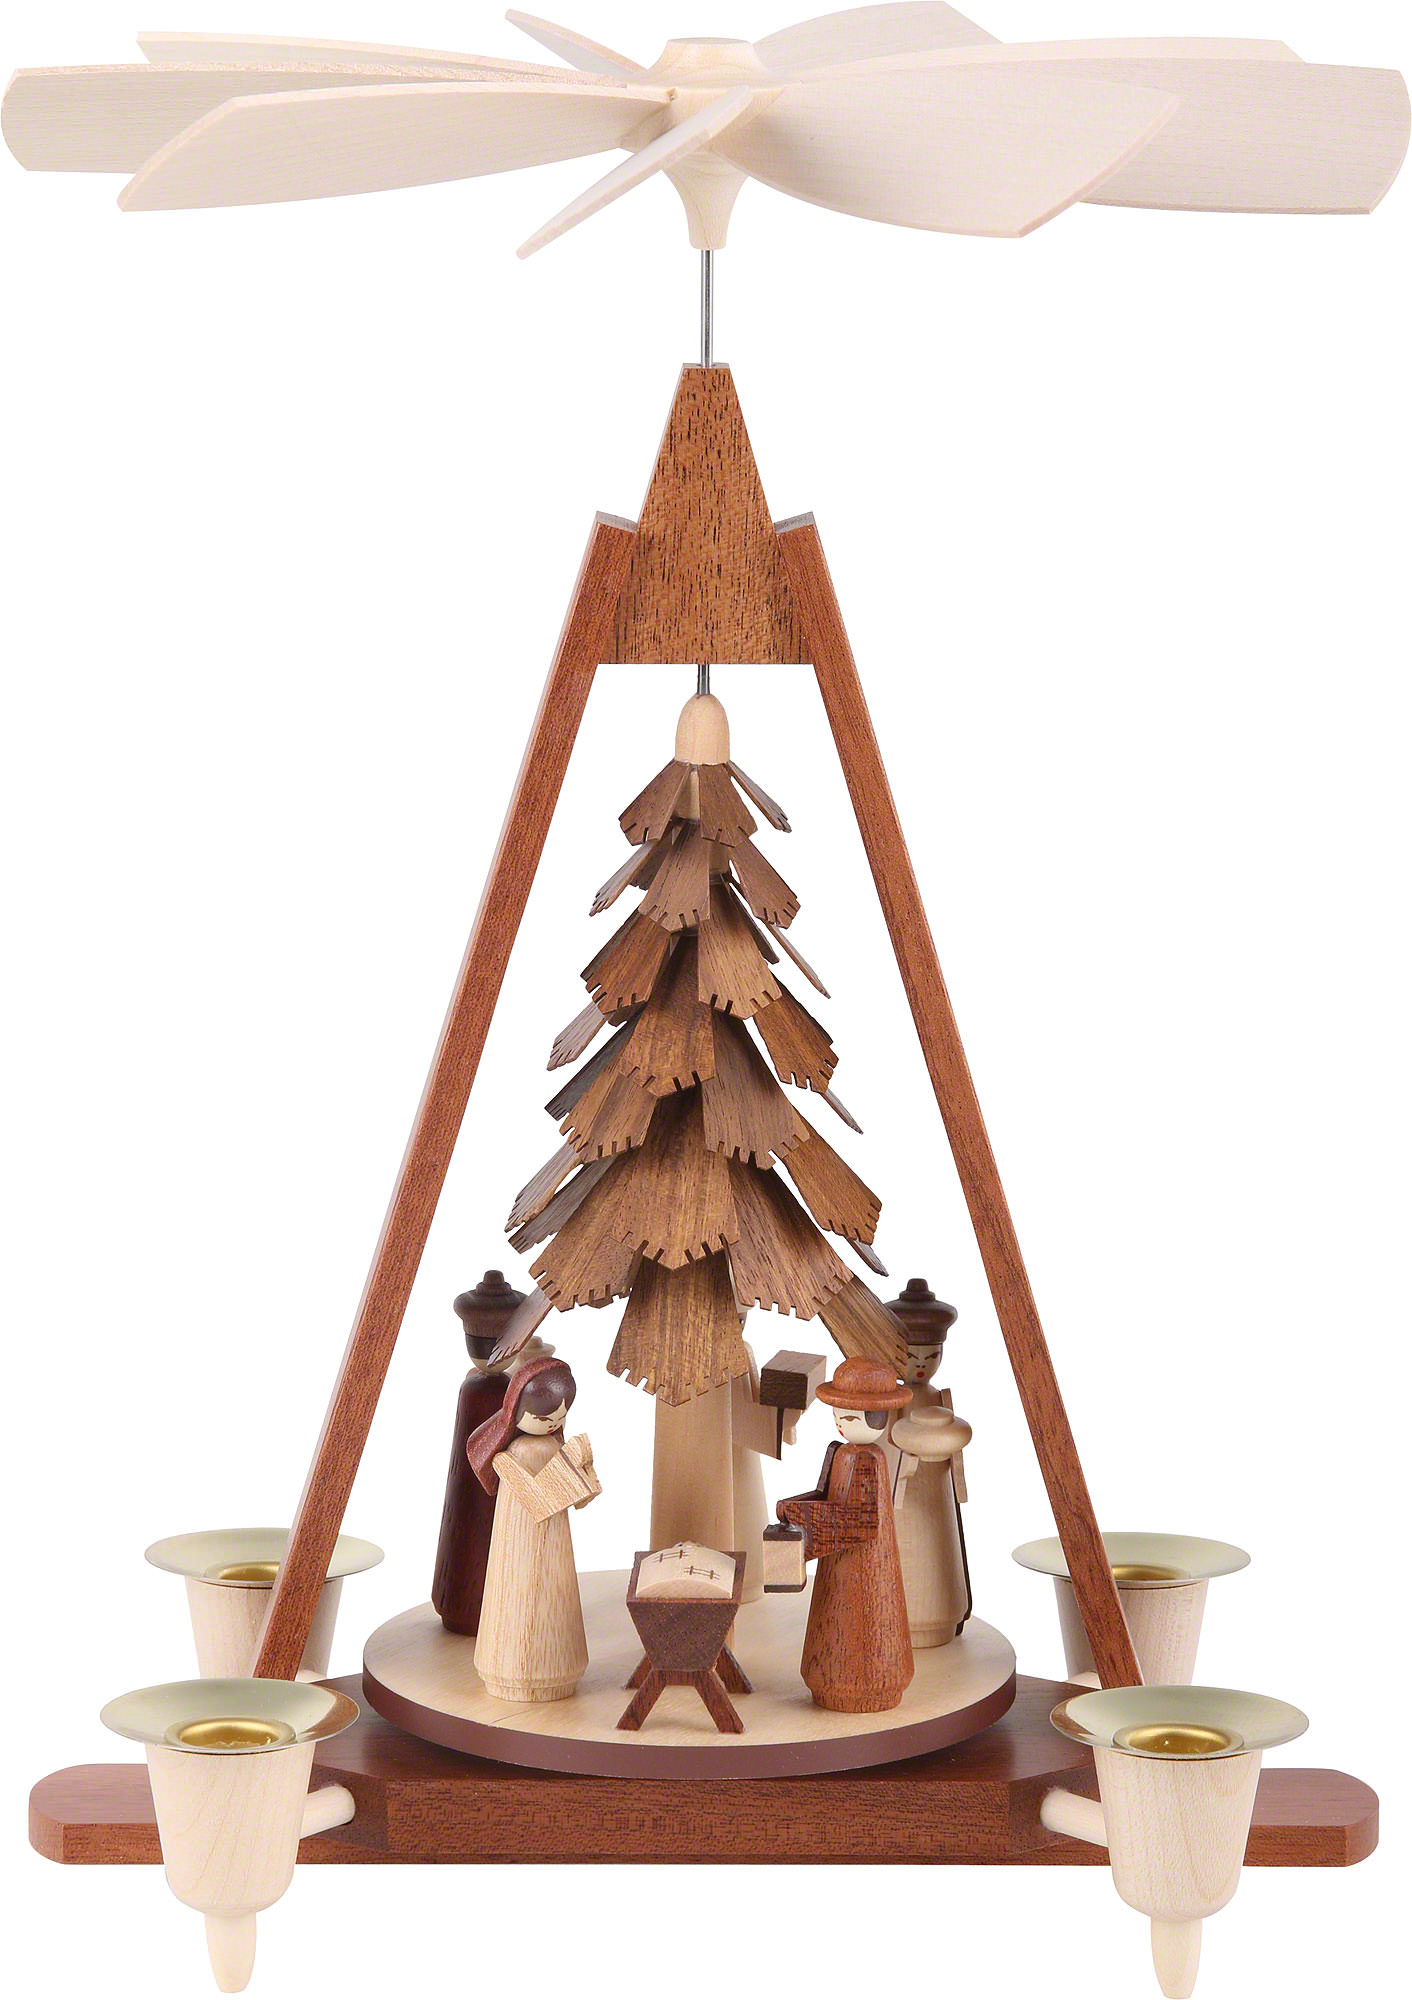 Christmas Pyramid.1 Tier Christmas Pyramid Nativity Scene 29 Cm 11 Inch